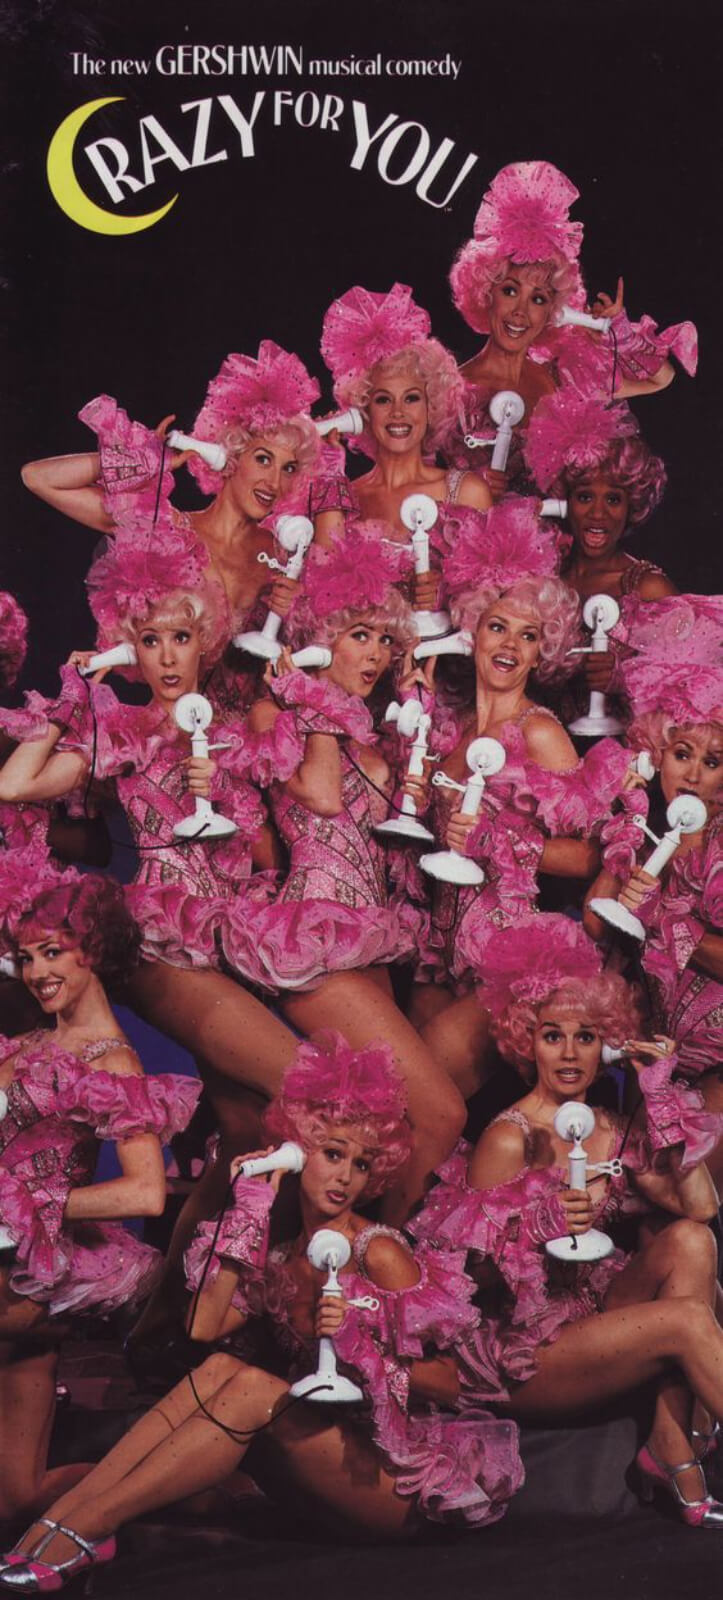 Poster with the dancers from the Original Broadway company of Crazy for You. They are dressed in pink tutus and posing with phones.